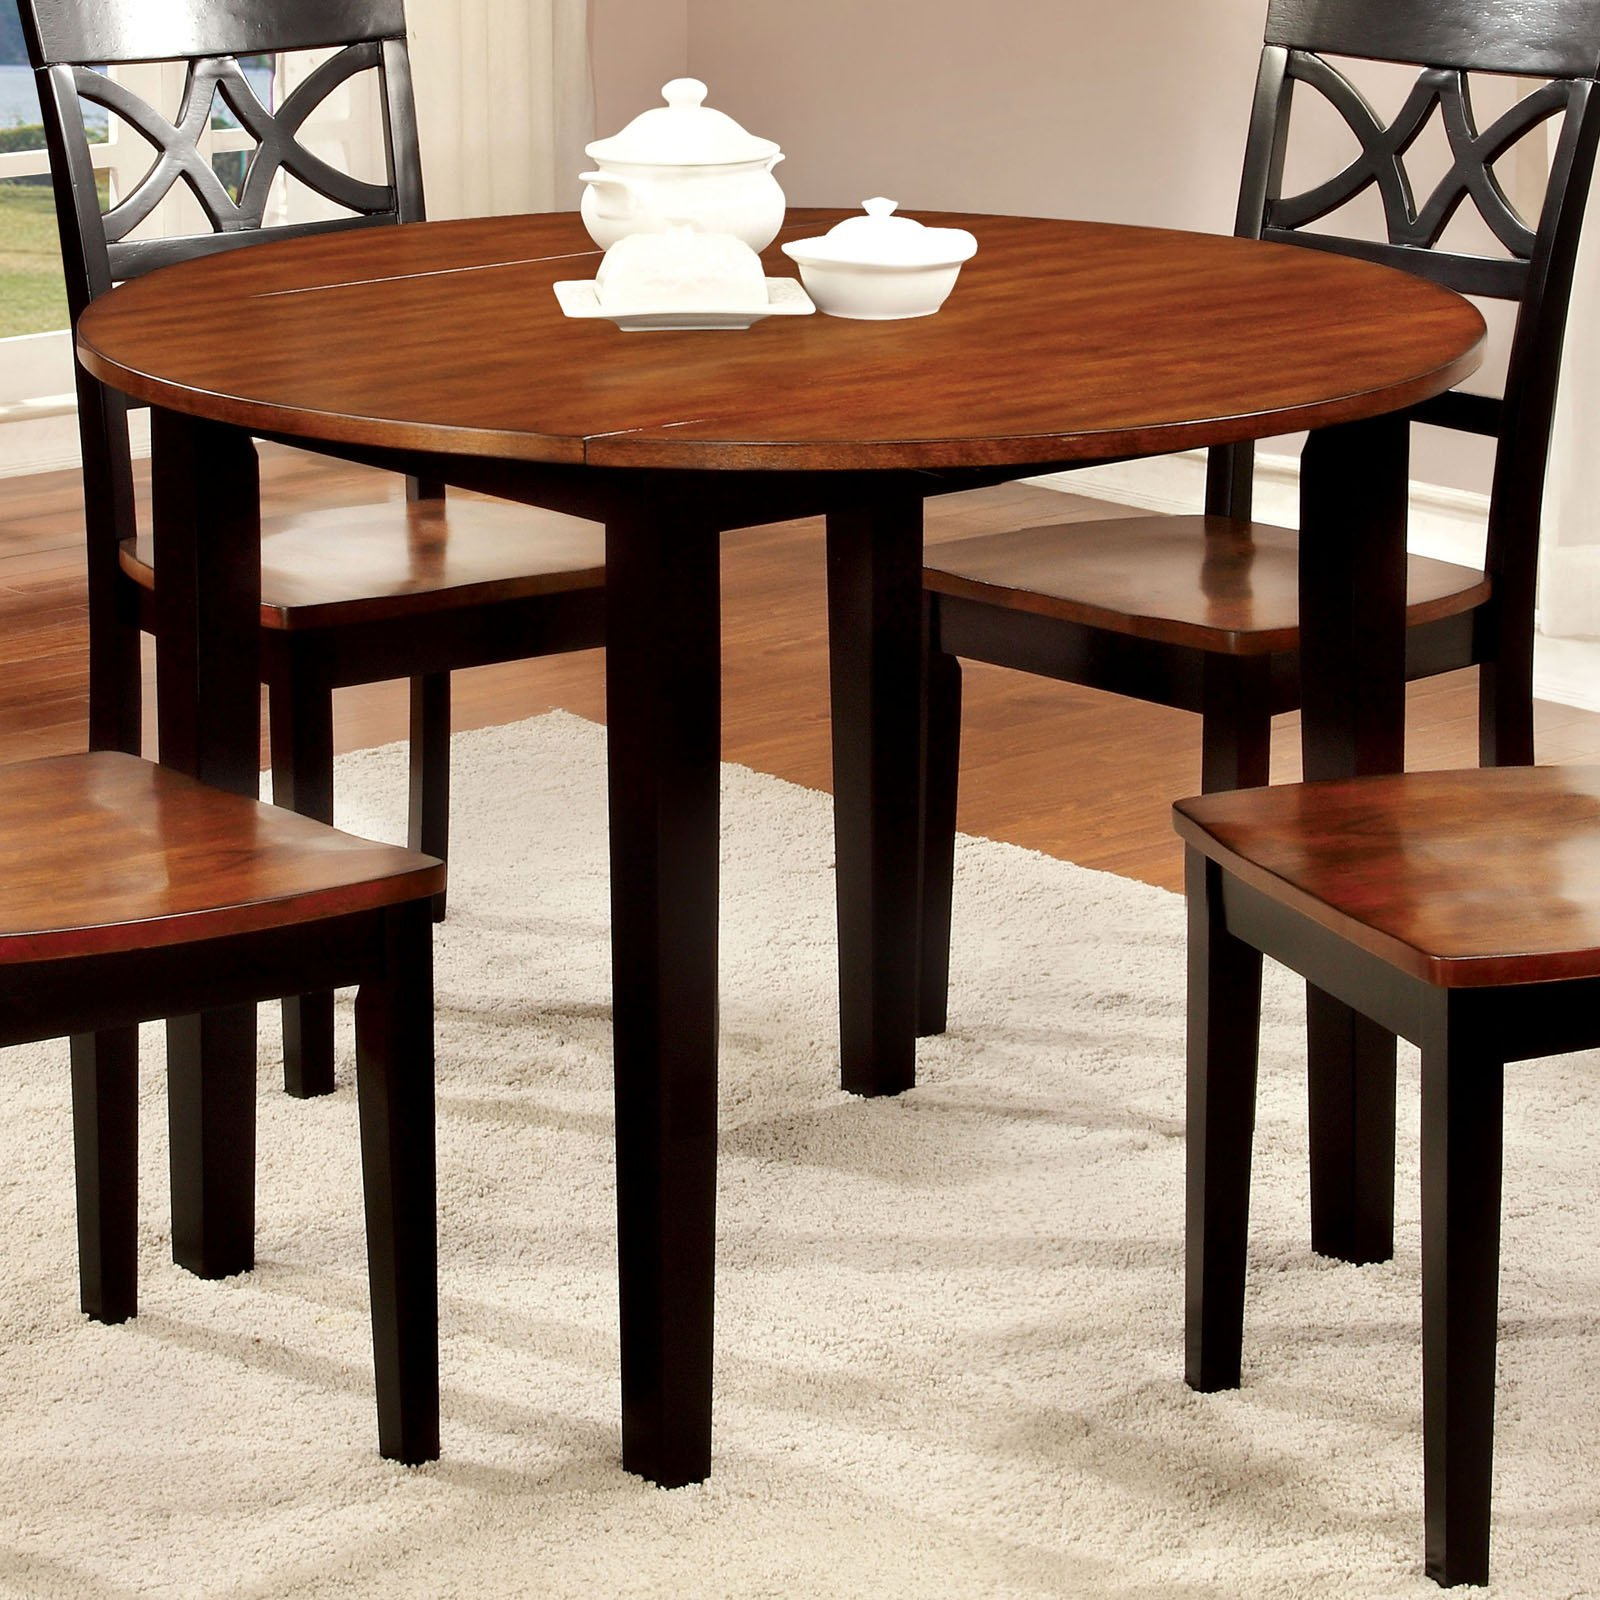 Furniture of America Lohman Dual-Tone Round Dining Table by Enitial Lab